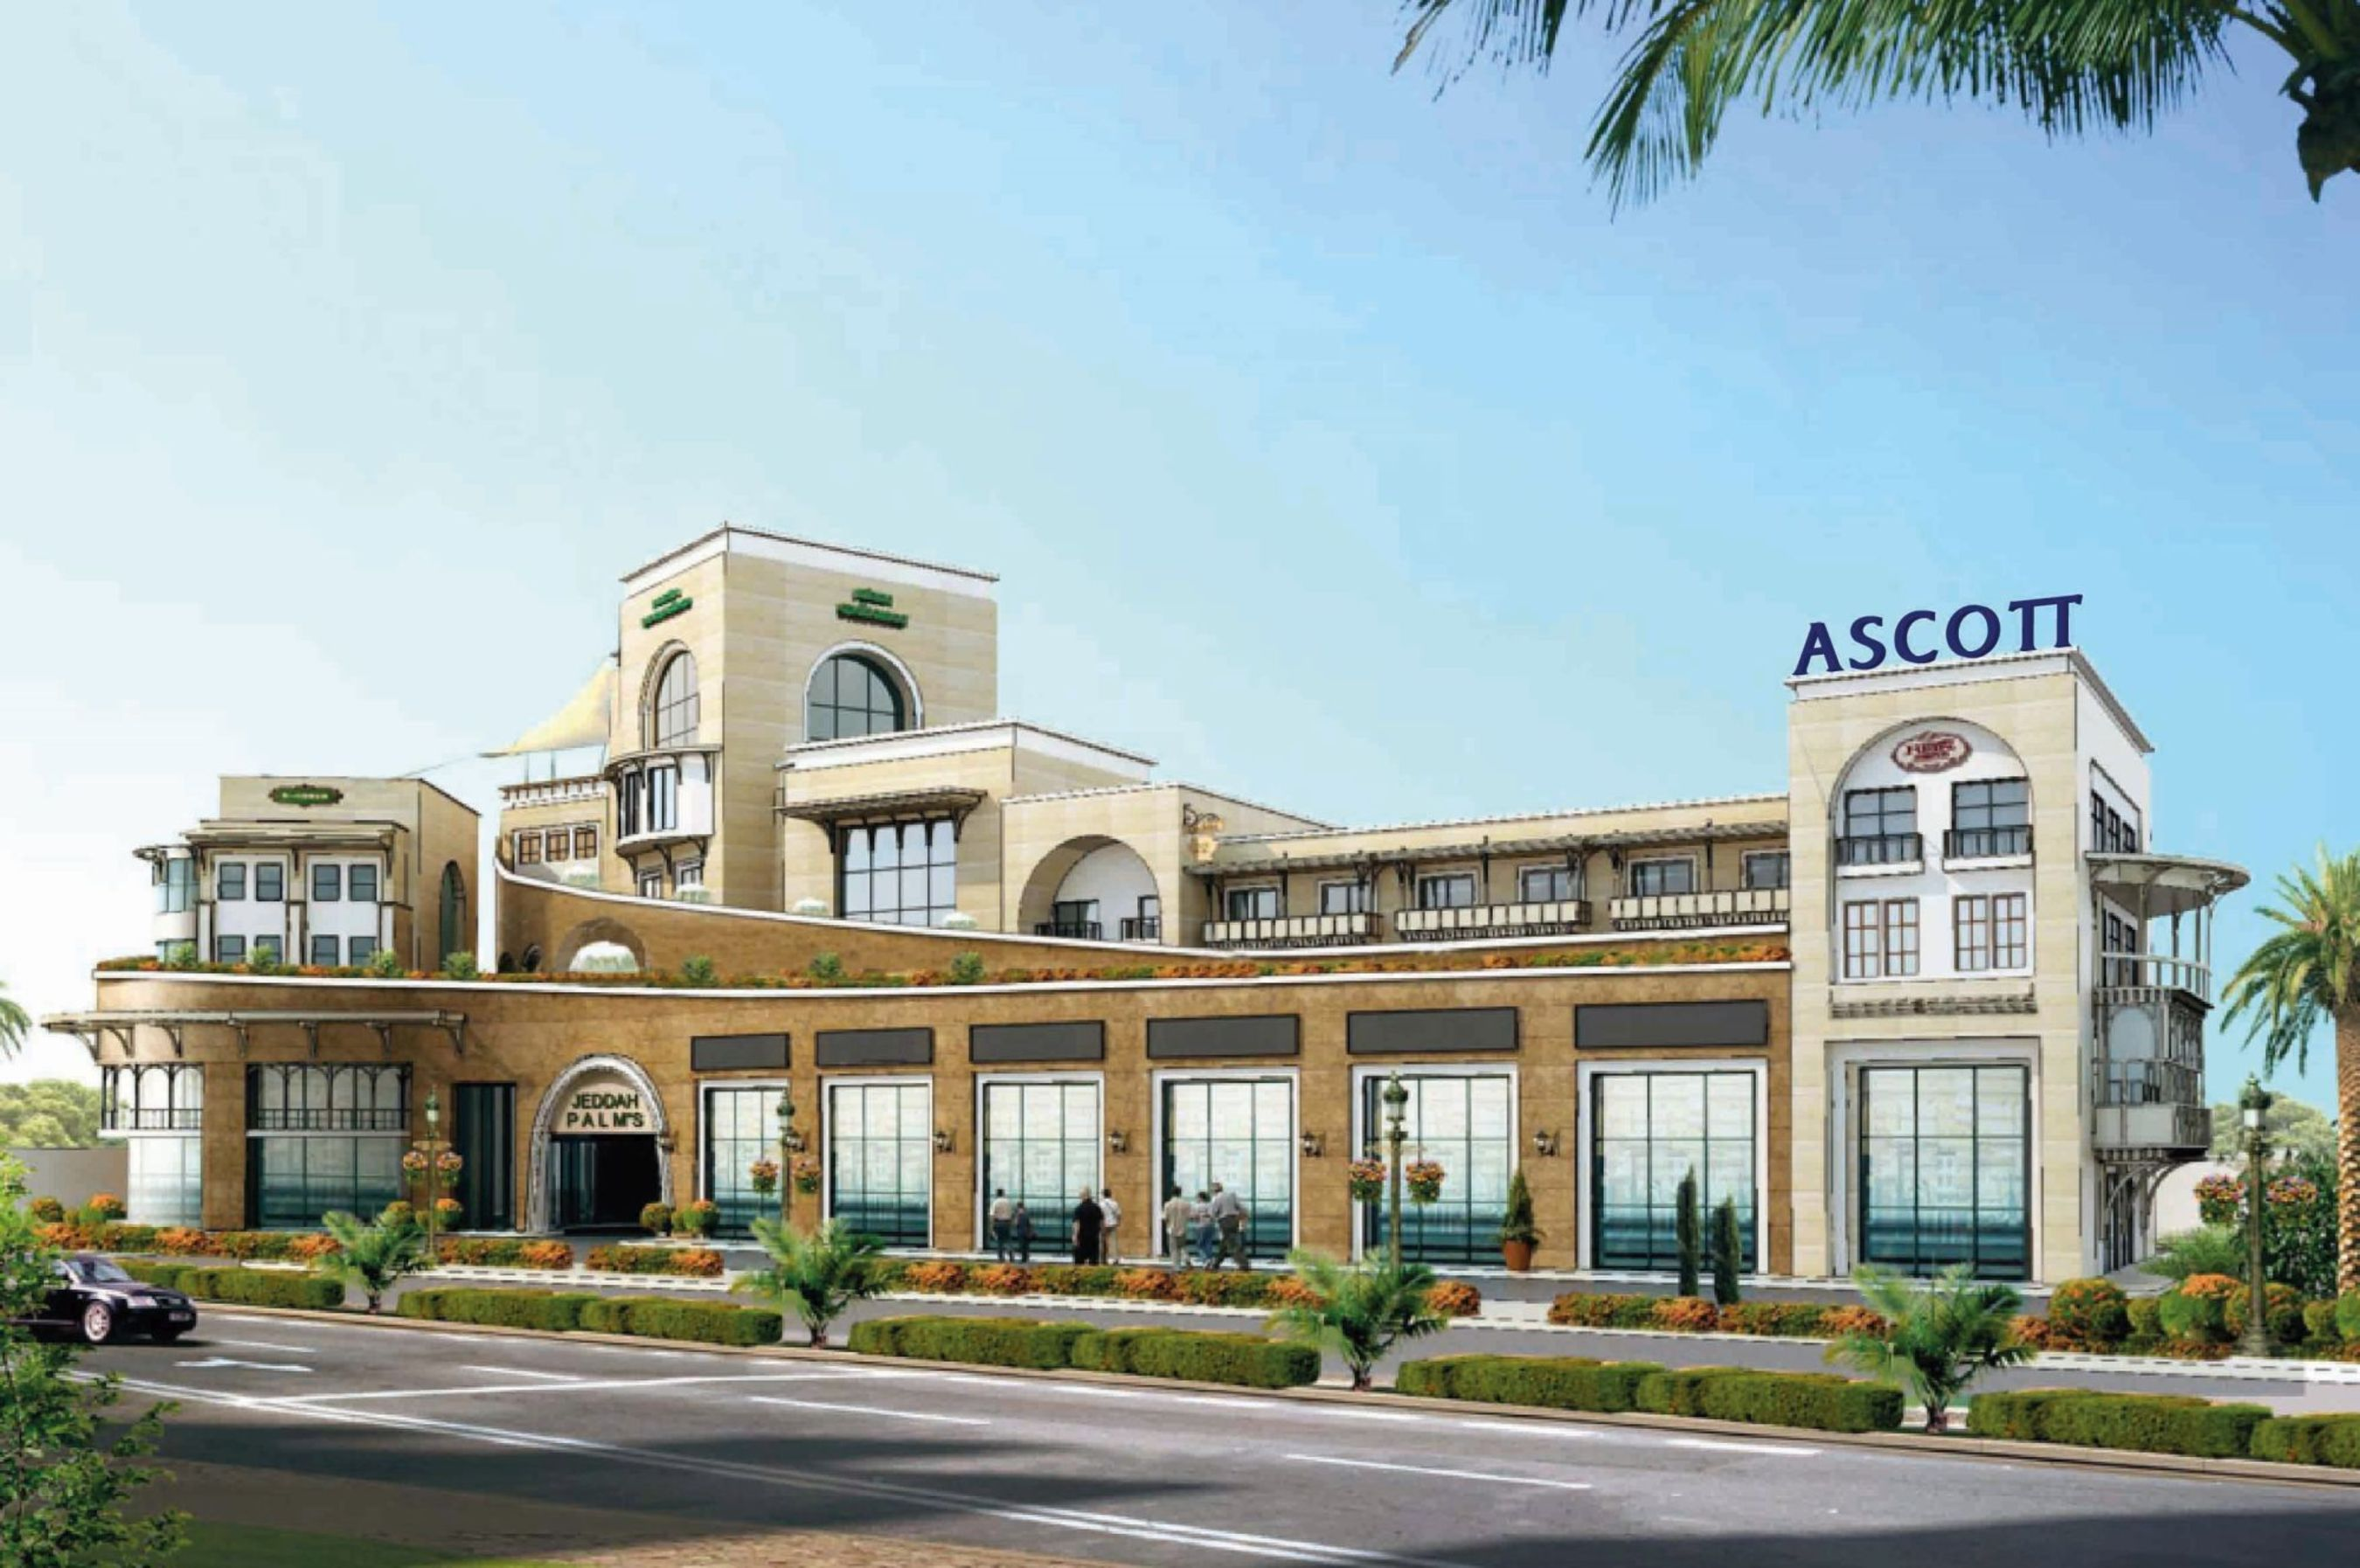 Ascott Sees Promising Growth in Serviced Apartments Industry for GCC Hospitality & Tourism Markets